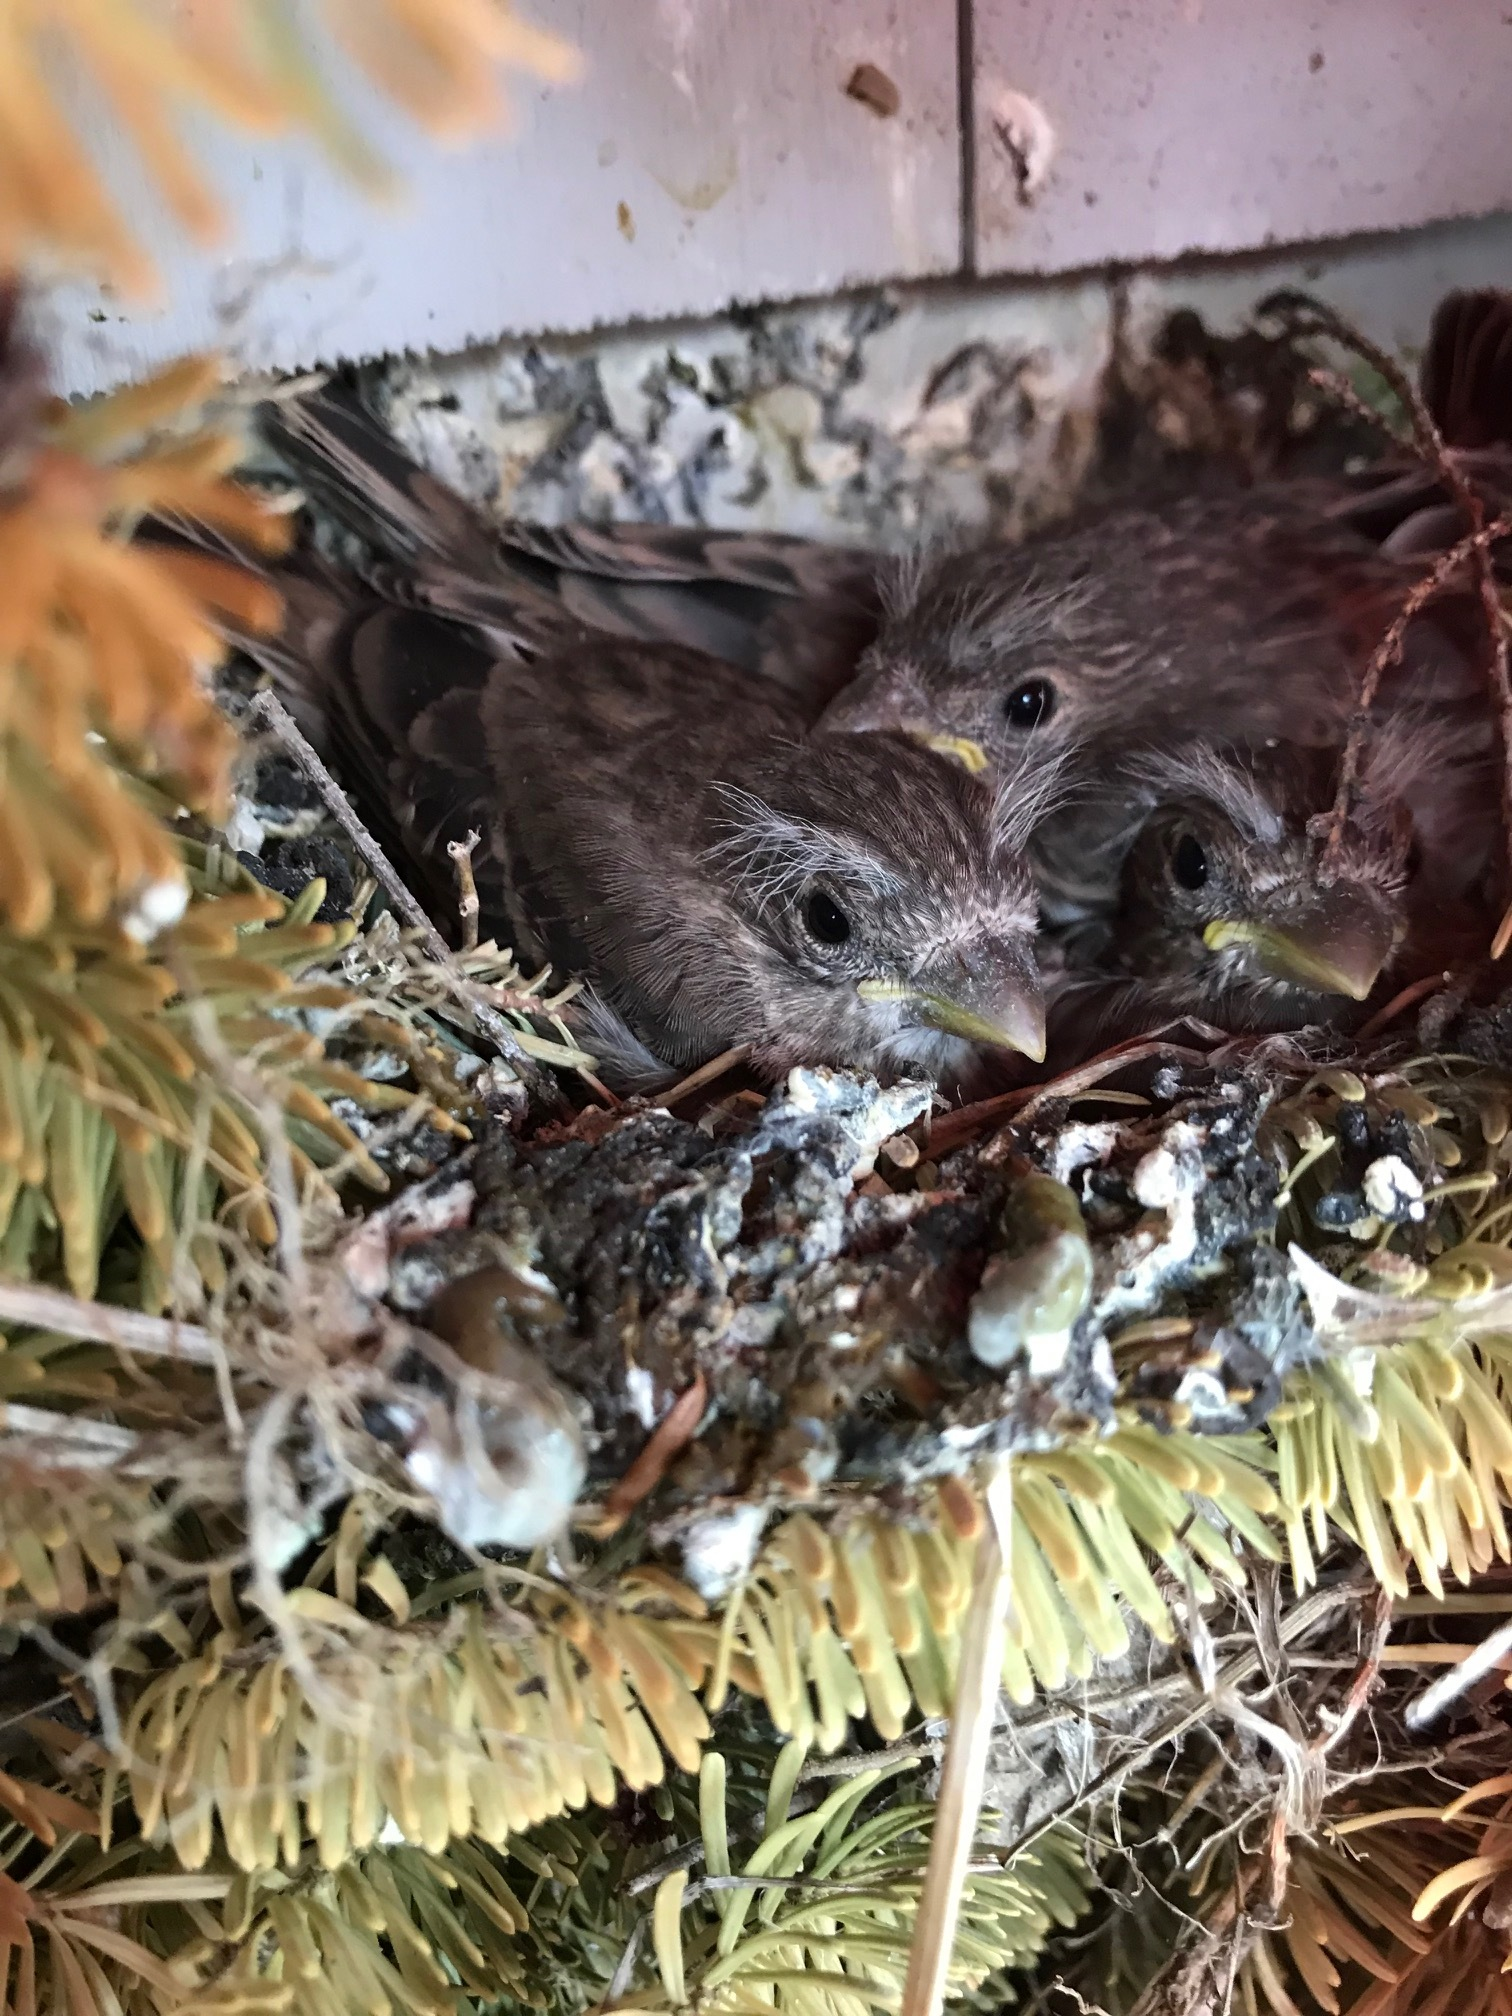 The fledglings hatched and a few weeks later they wee ready for flight! May, 2019